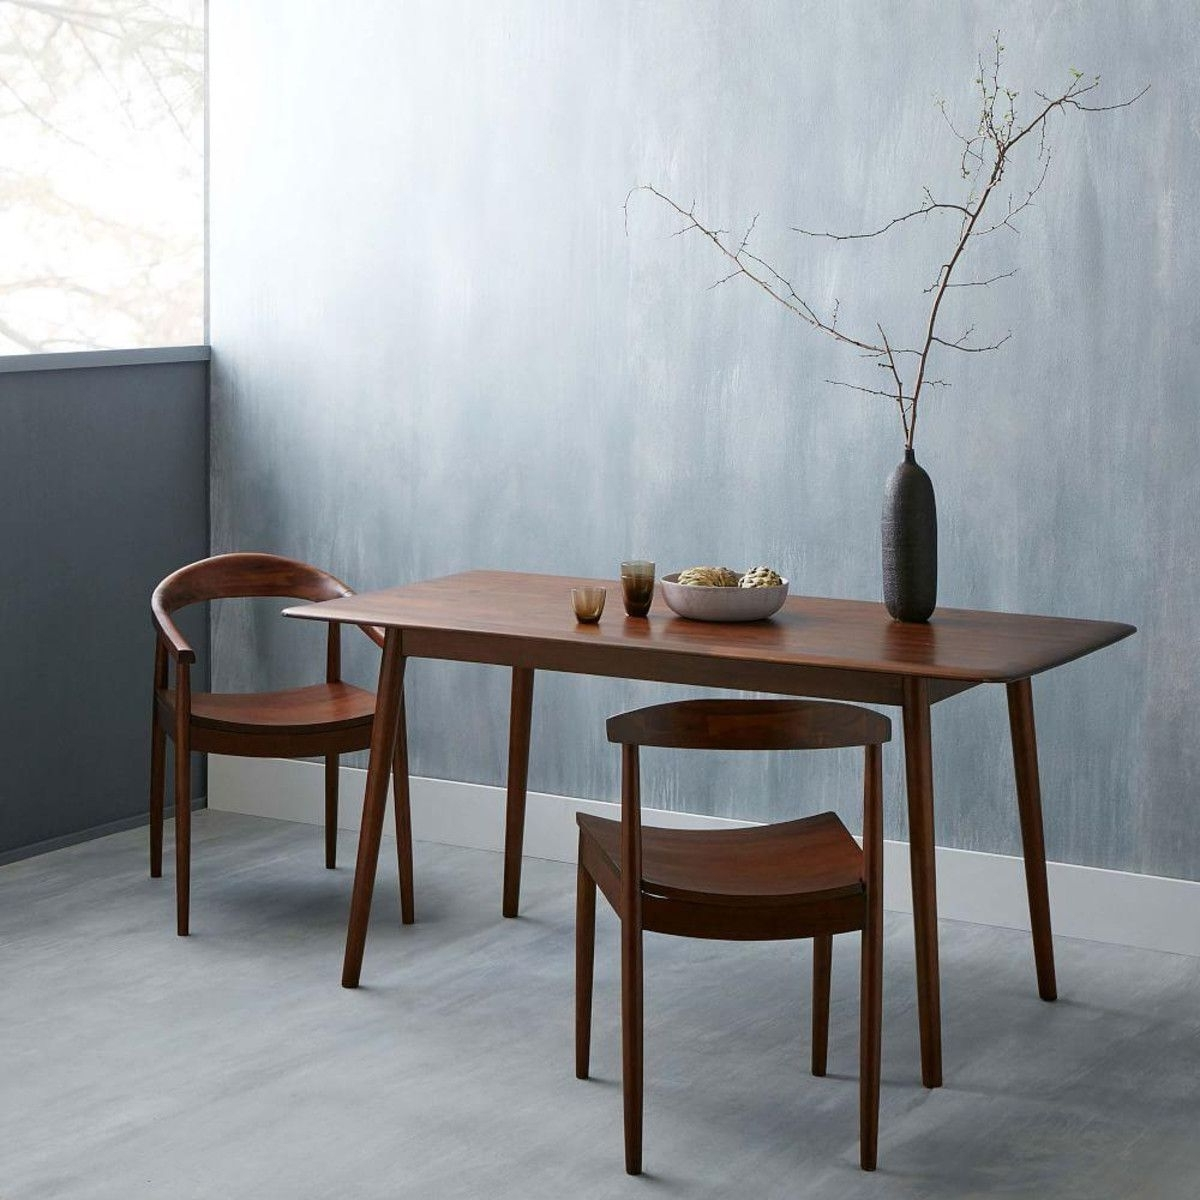 2018 Stunning Modern Dining Table West Elm Sussex Gumtree Chairs Republic Inside Hayden Dining Tables (View 22 of 25)